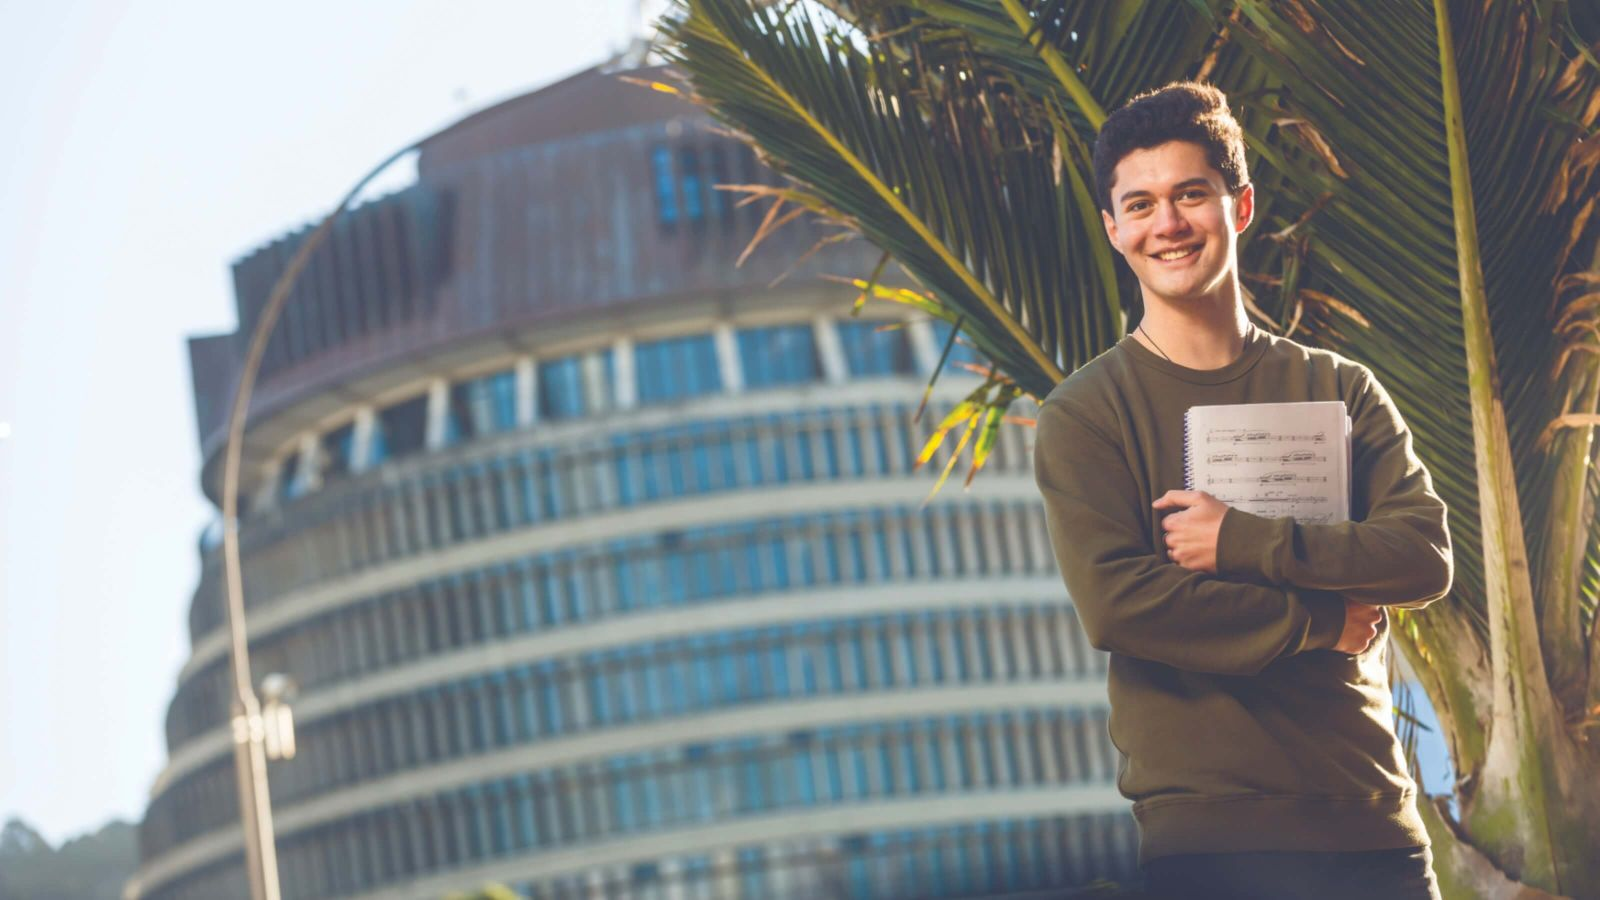 Smiling student, Reuben, is standing holding a book in front of the Beehive in Wellington.